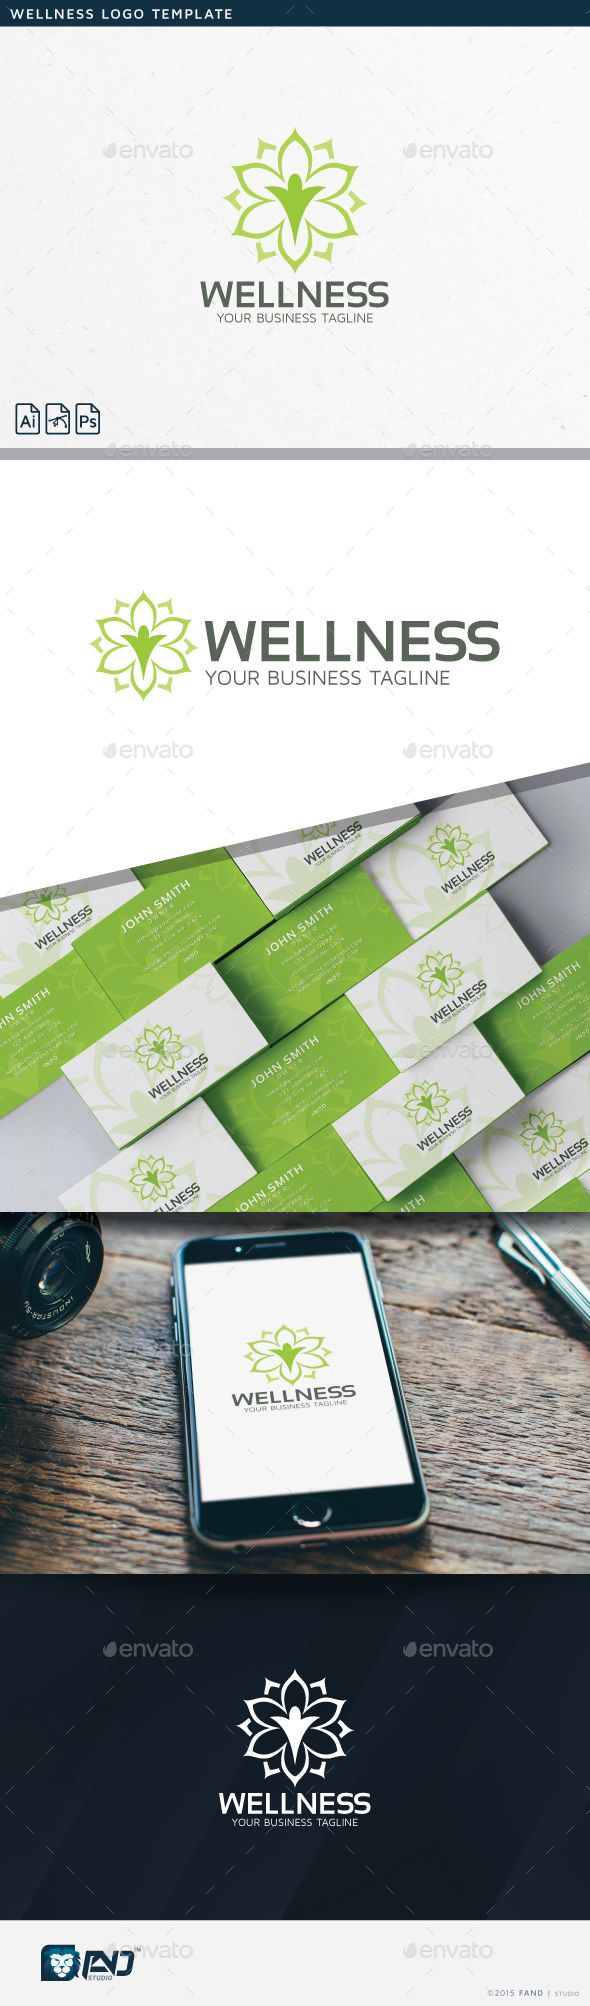 Wellness Logo Template PSD, Vector EPS, AI. Download here: http://graphicriver.net/item/wellness/14087077?ref=ksioks